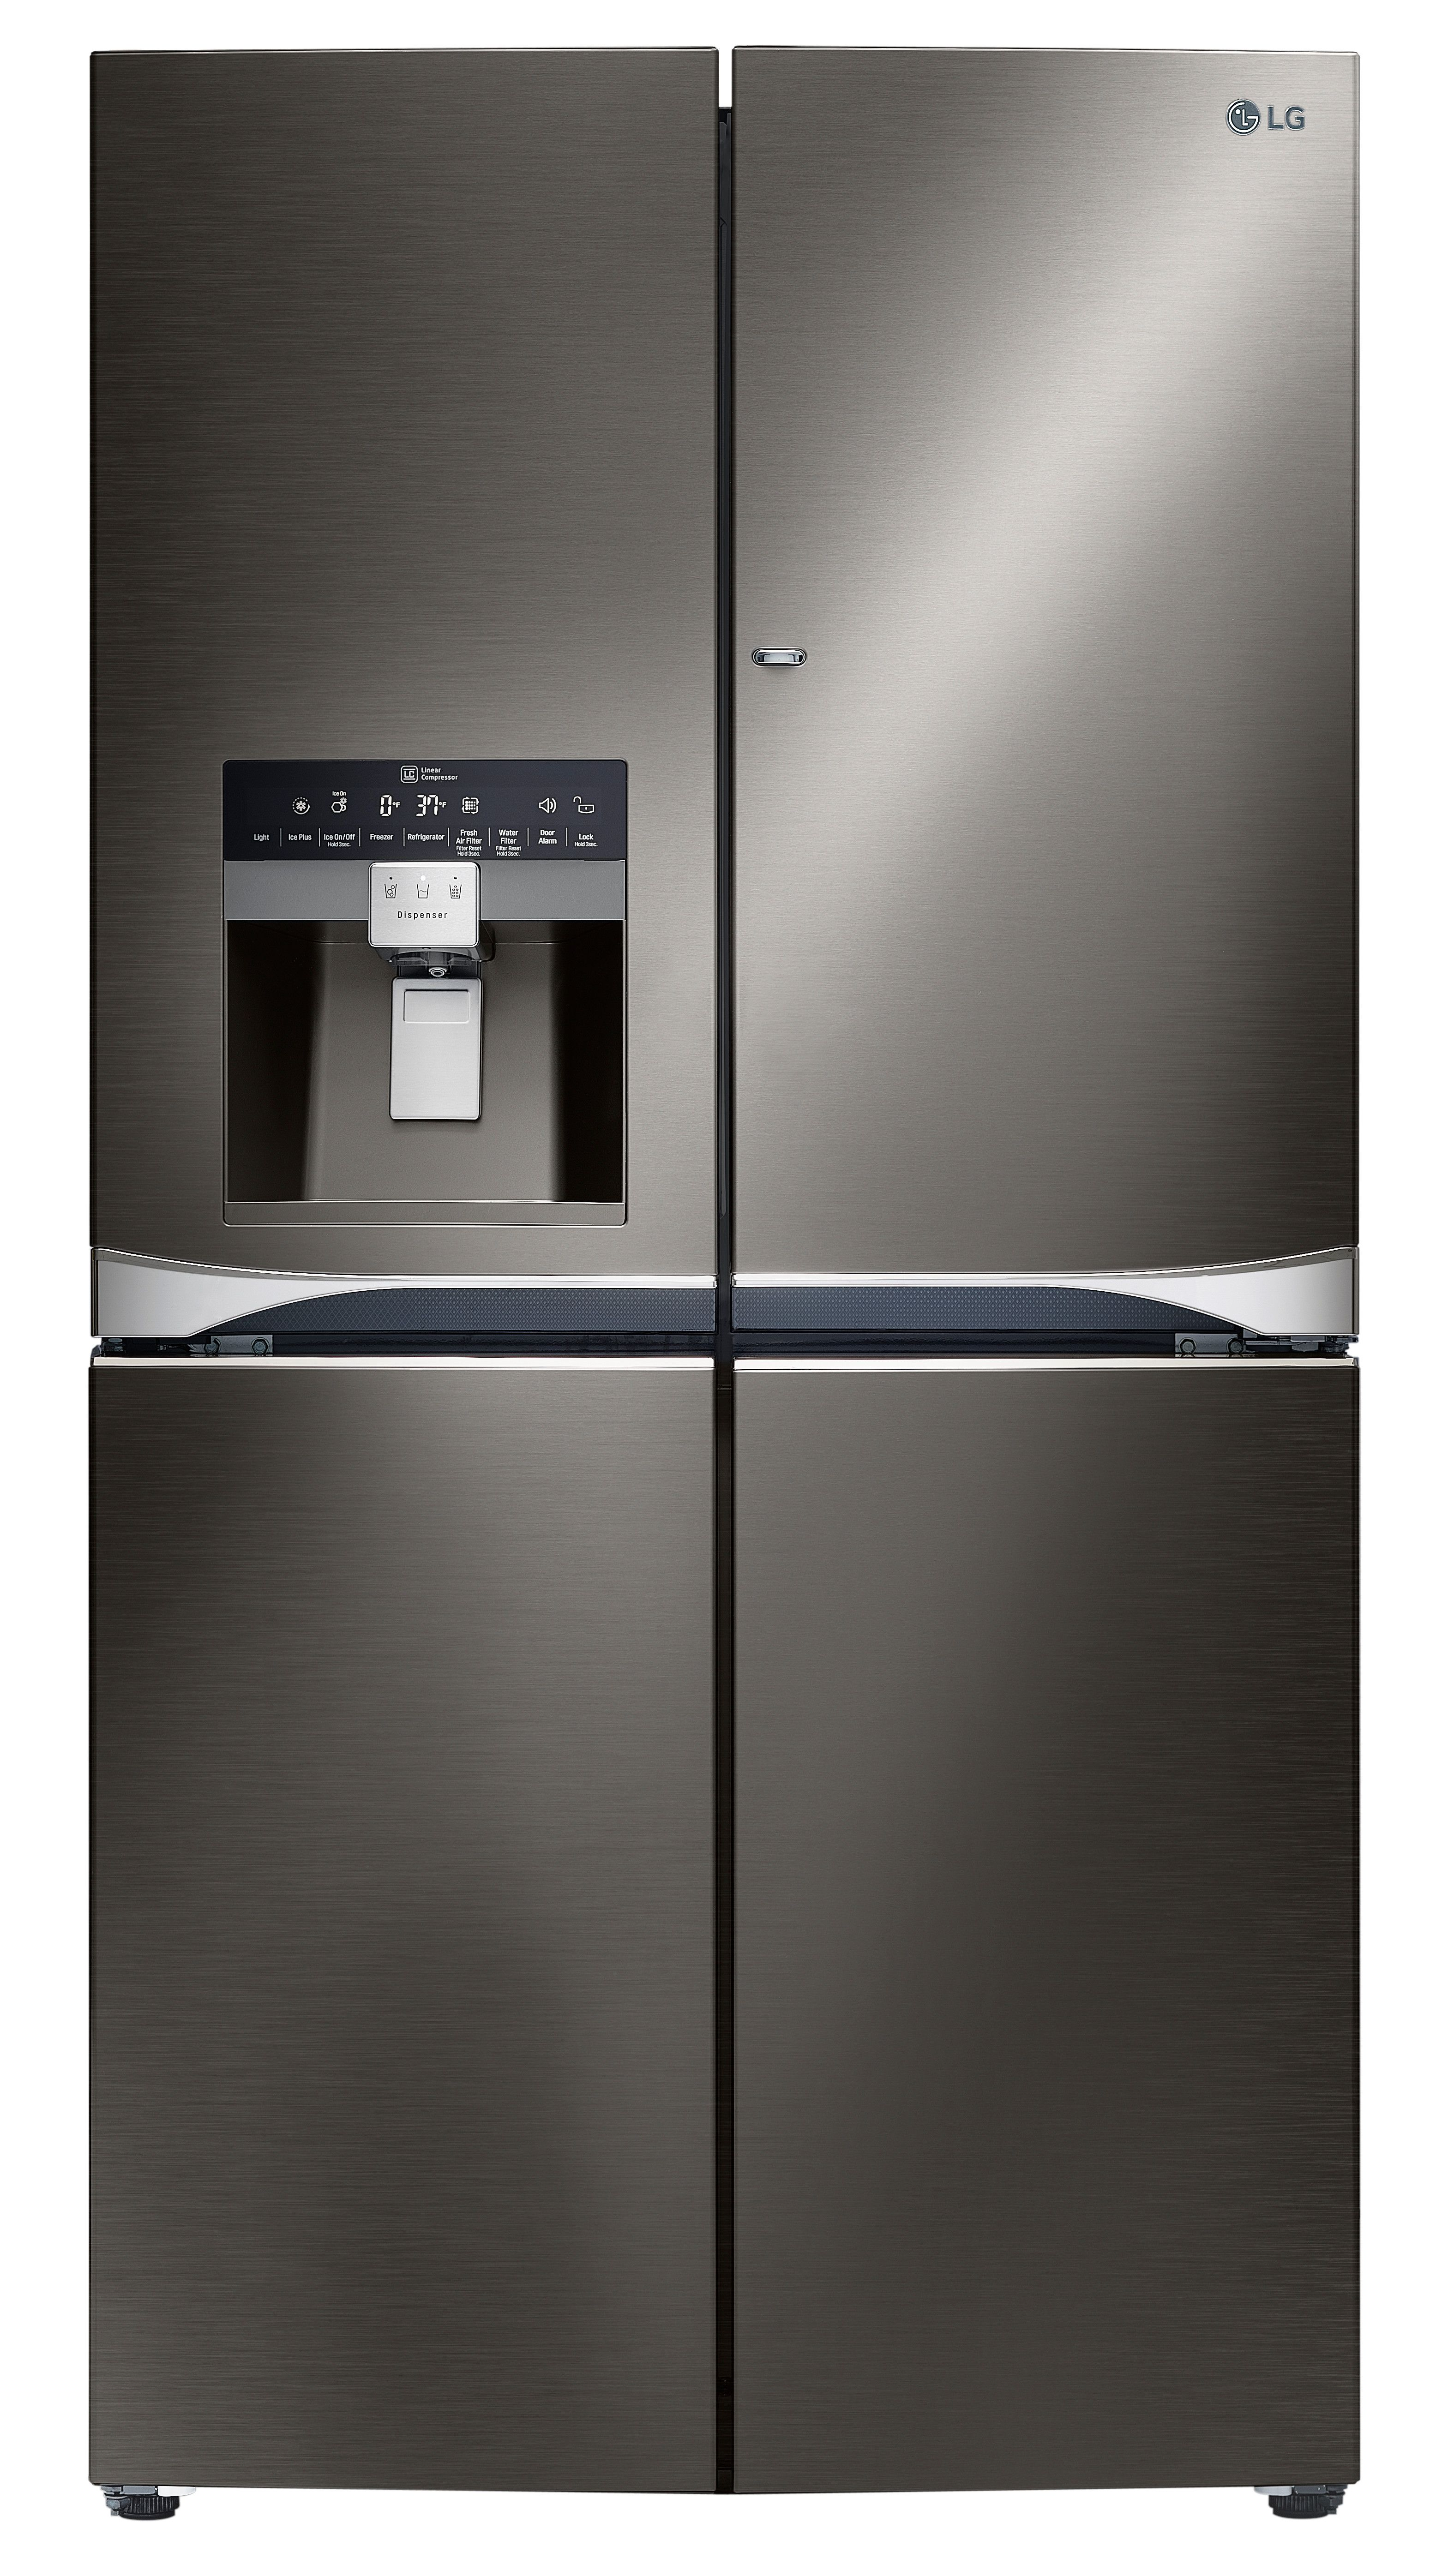 Lg Black Stainless Series Archives Nyc Single Mom Stainless Steel French Door Refrigerator Luxury Appliances French Door Refrigerator